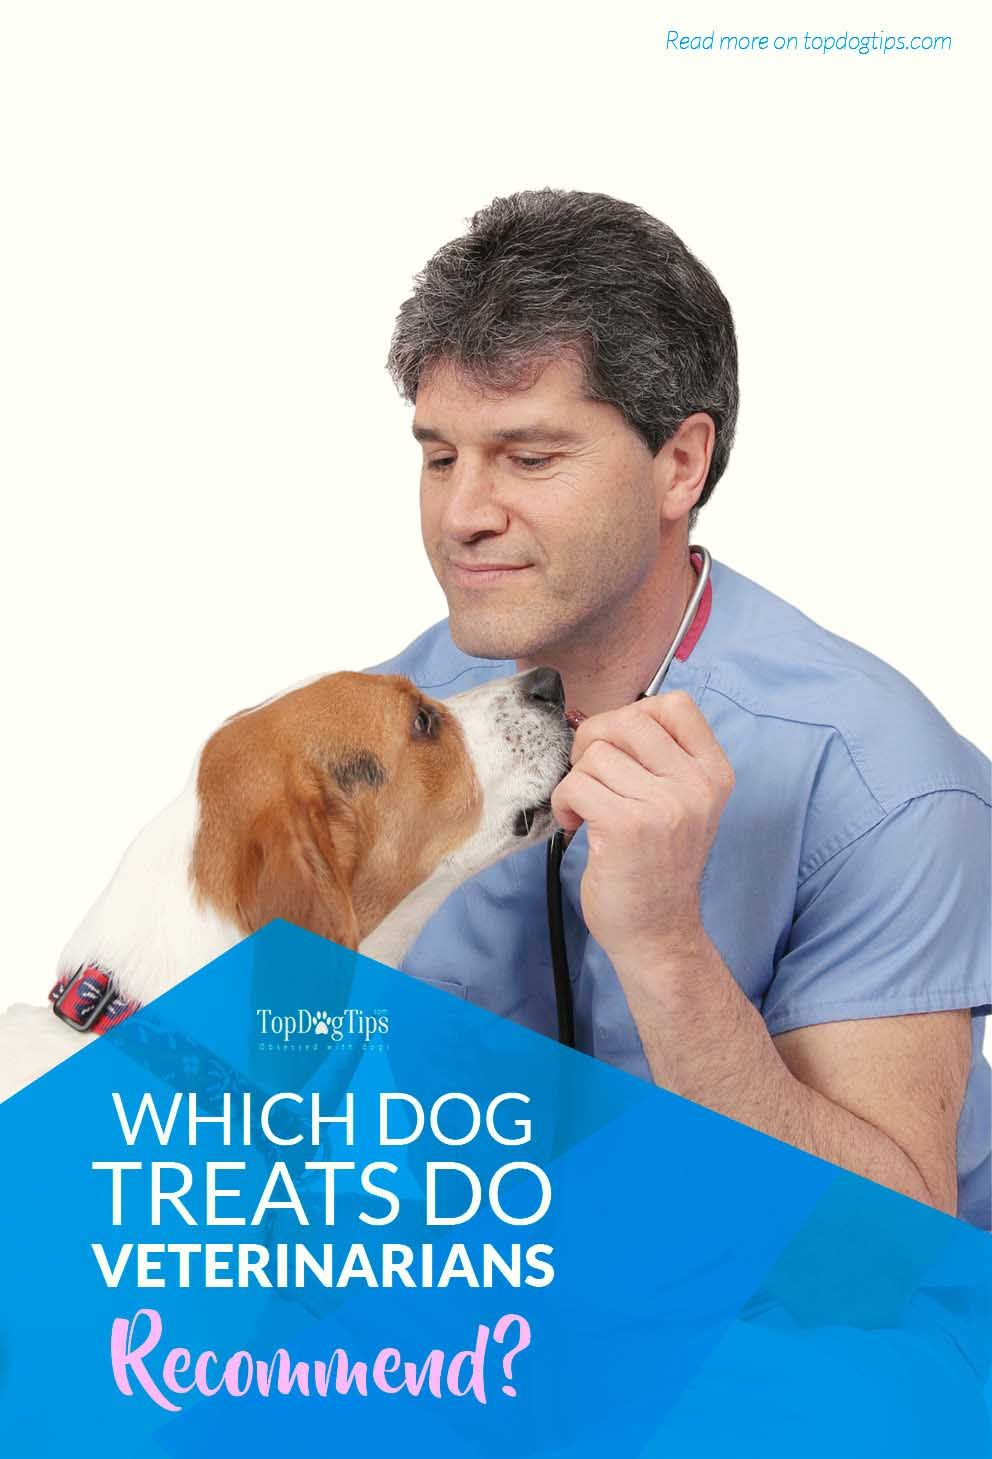 Which Dog Treats Do Veterinarians Recommend and Why? Many vets have their own preferences with regards to recommended dog treats. It's important to understand that in most cases, vet recommended treats for dogs are based on opinion, their own personal philosophies, which schools they attended, and what their professional experience has taught them.  #dogs #dogtreats #vets #veterinarian #recommended #food #health